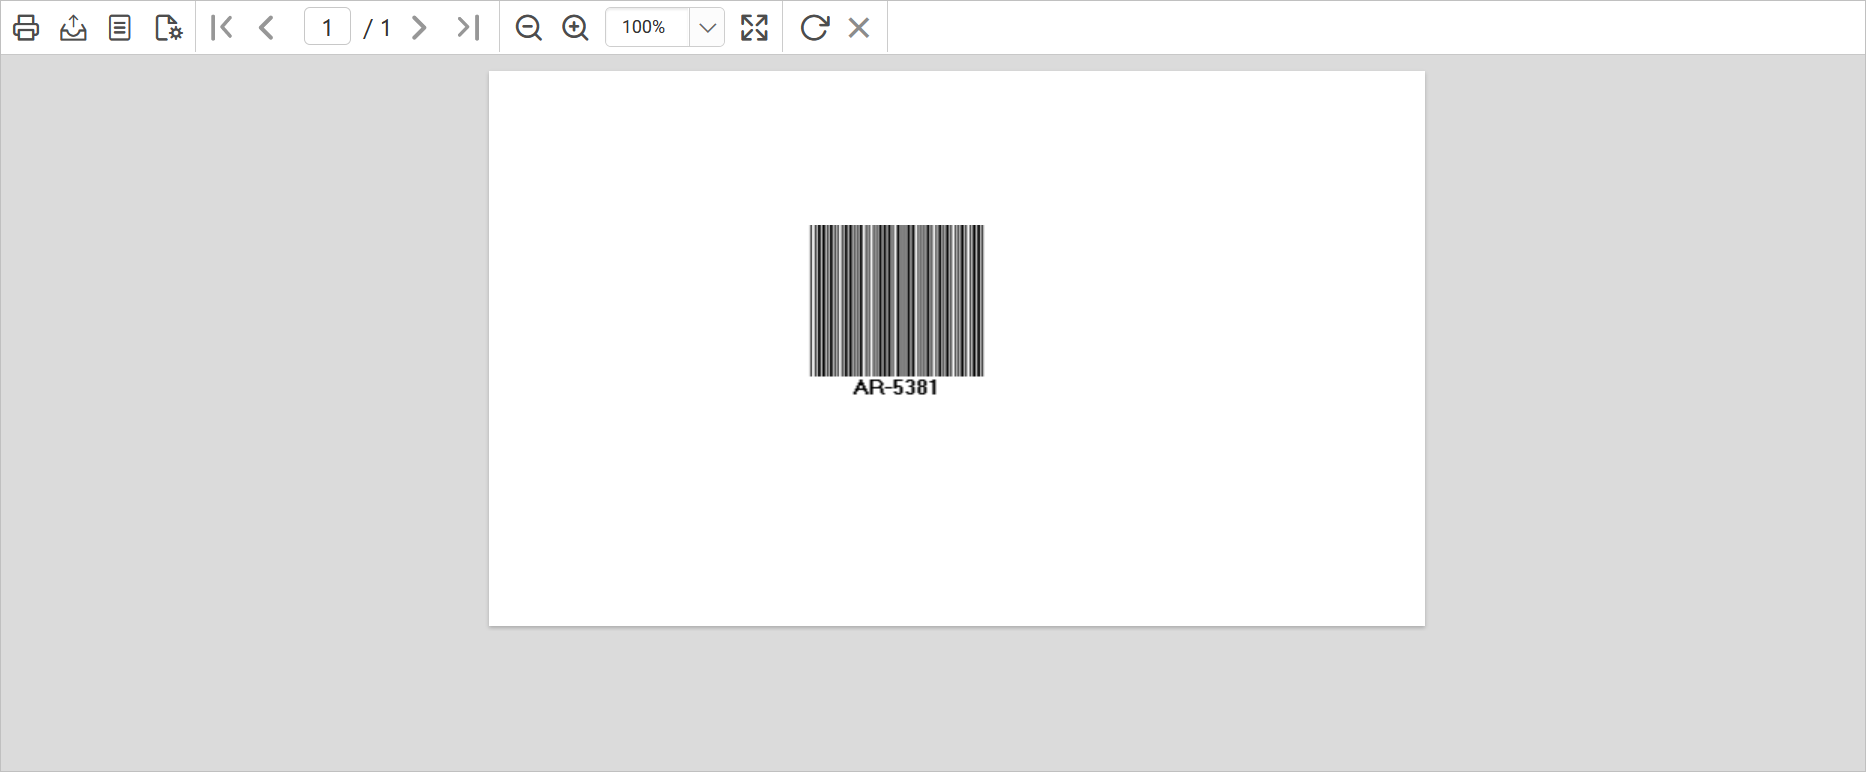 1D Barcode in preview